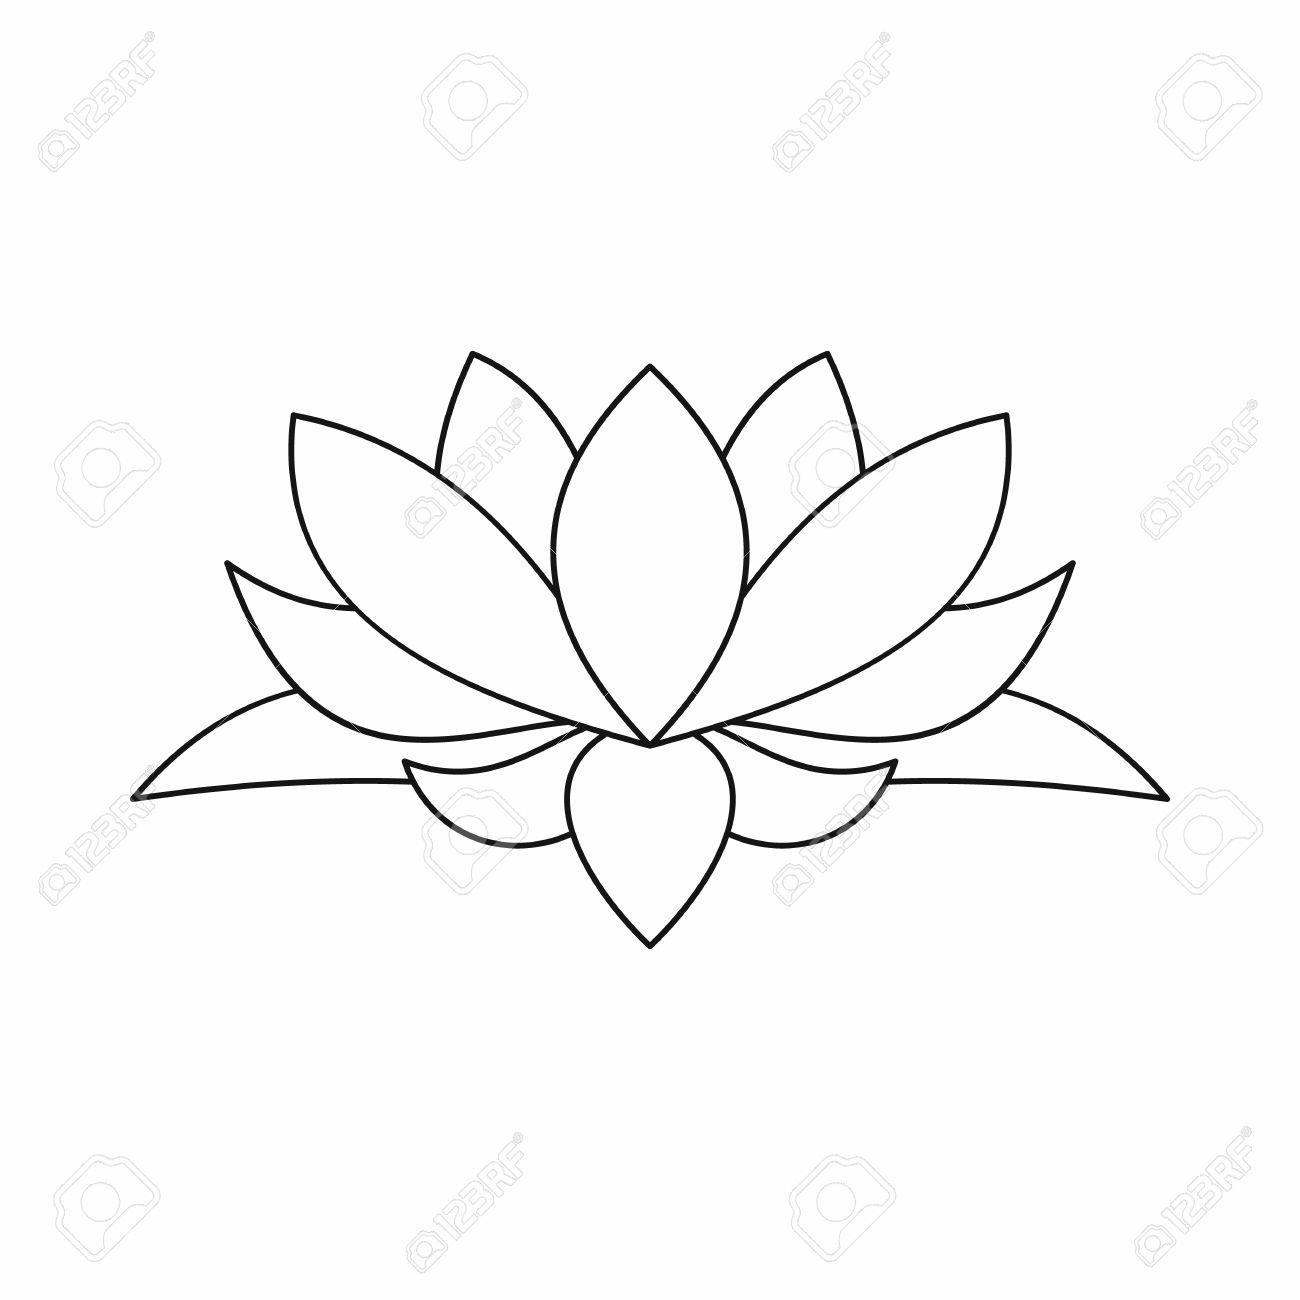 Lotus flower icon in outline style isolated on white background - 59137747